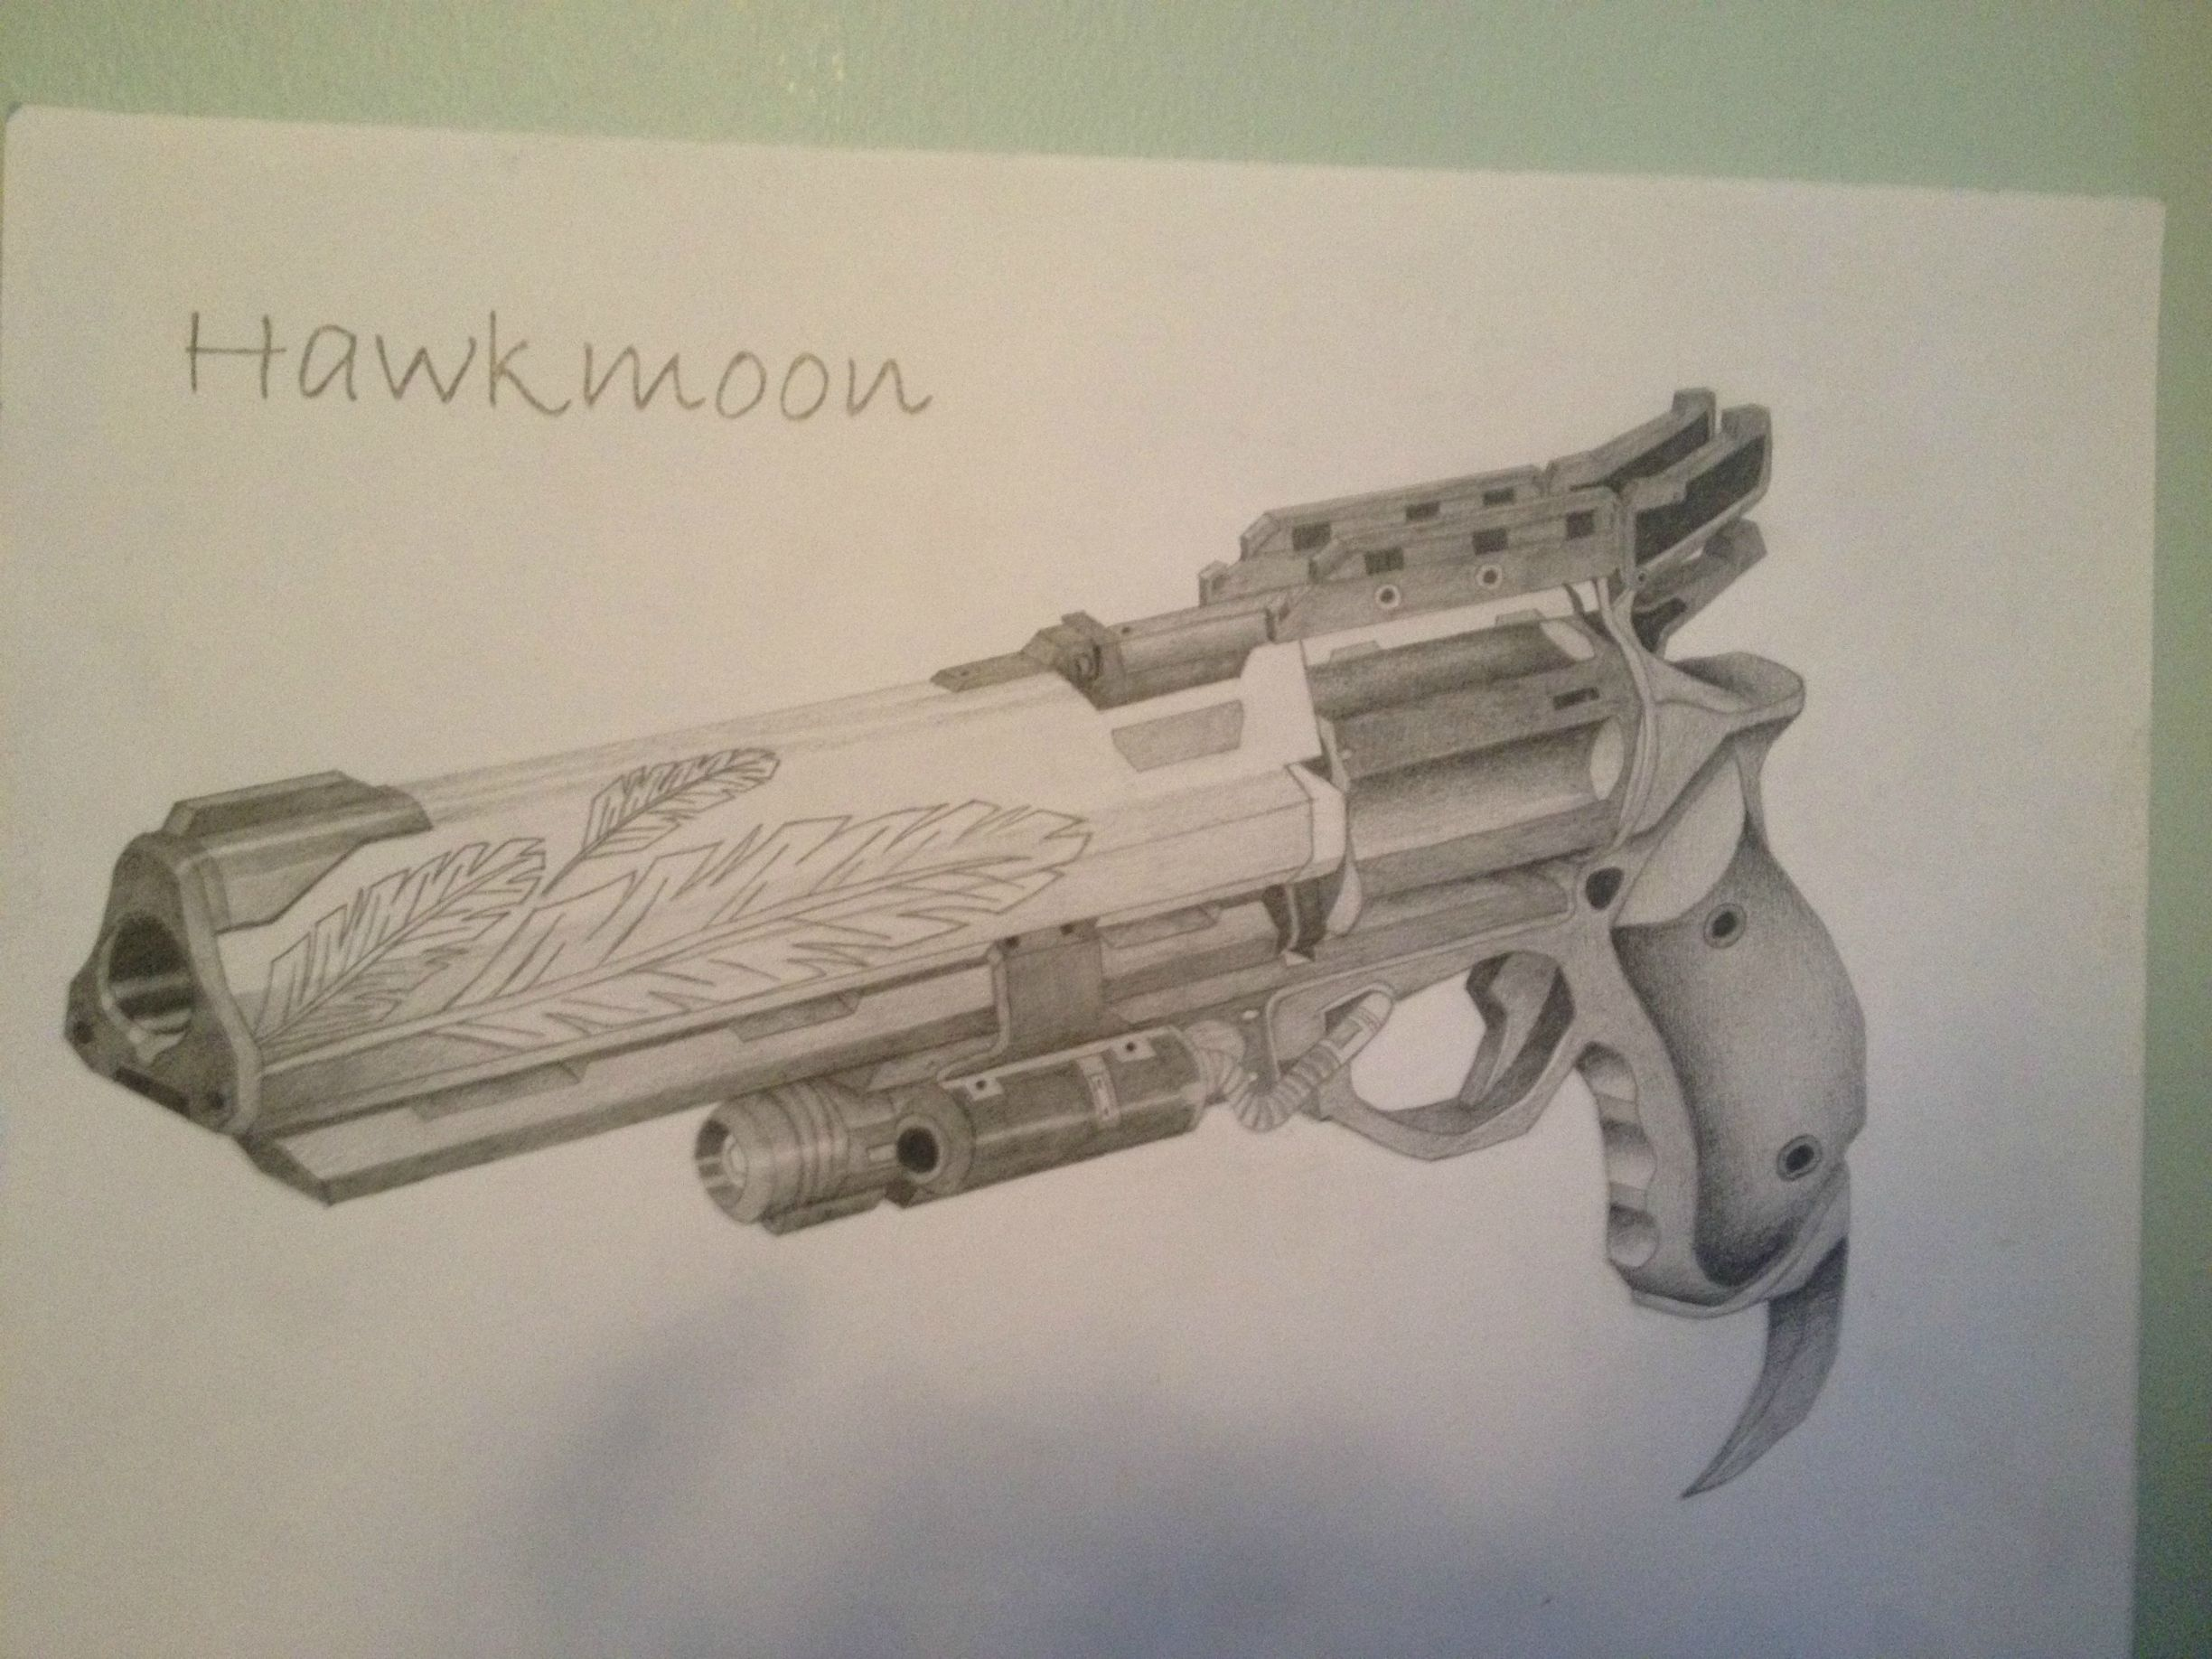 Drawn weapon destiny Across I Topic wondering website